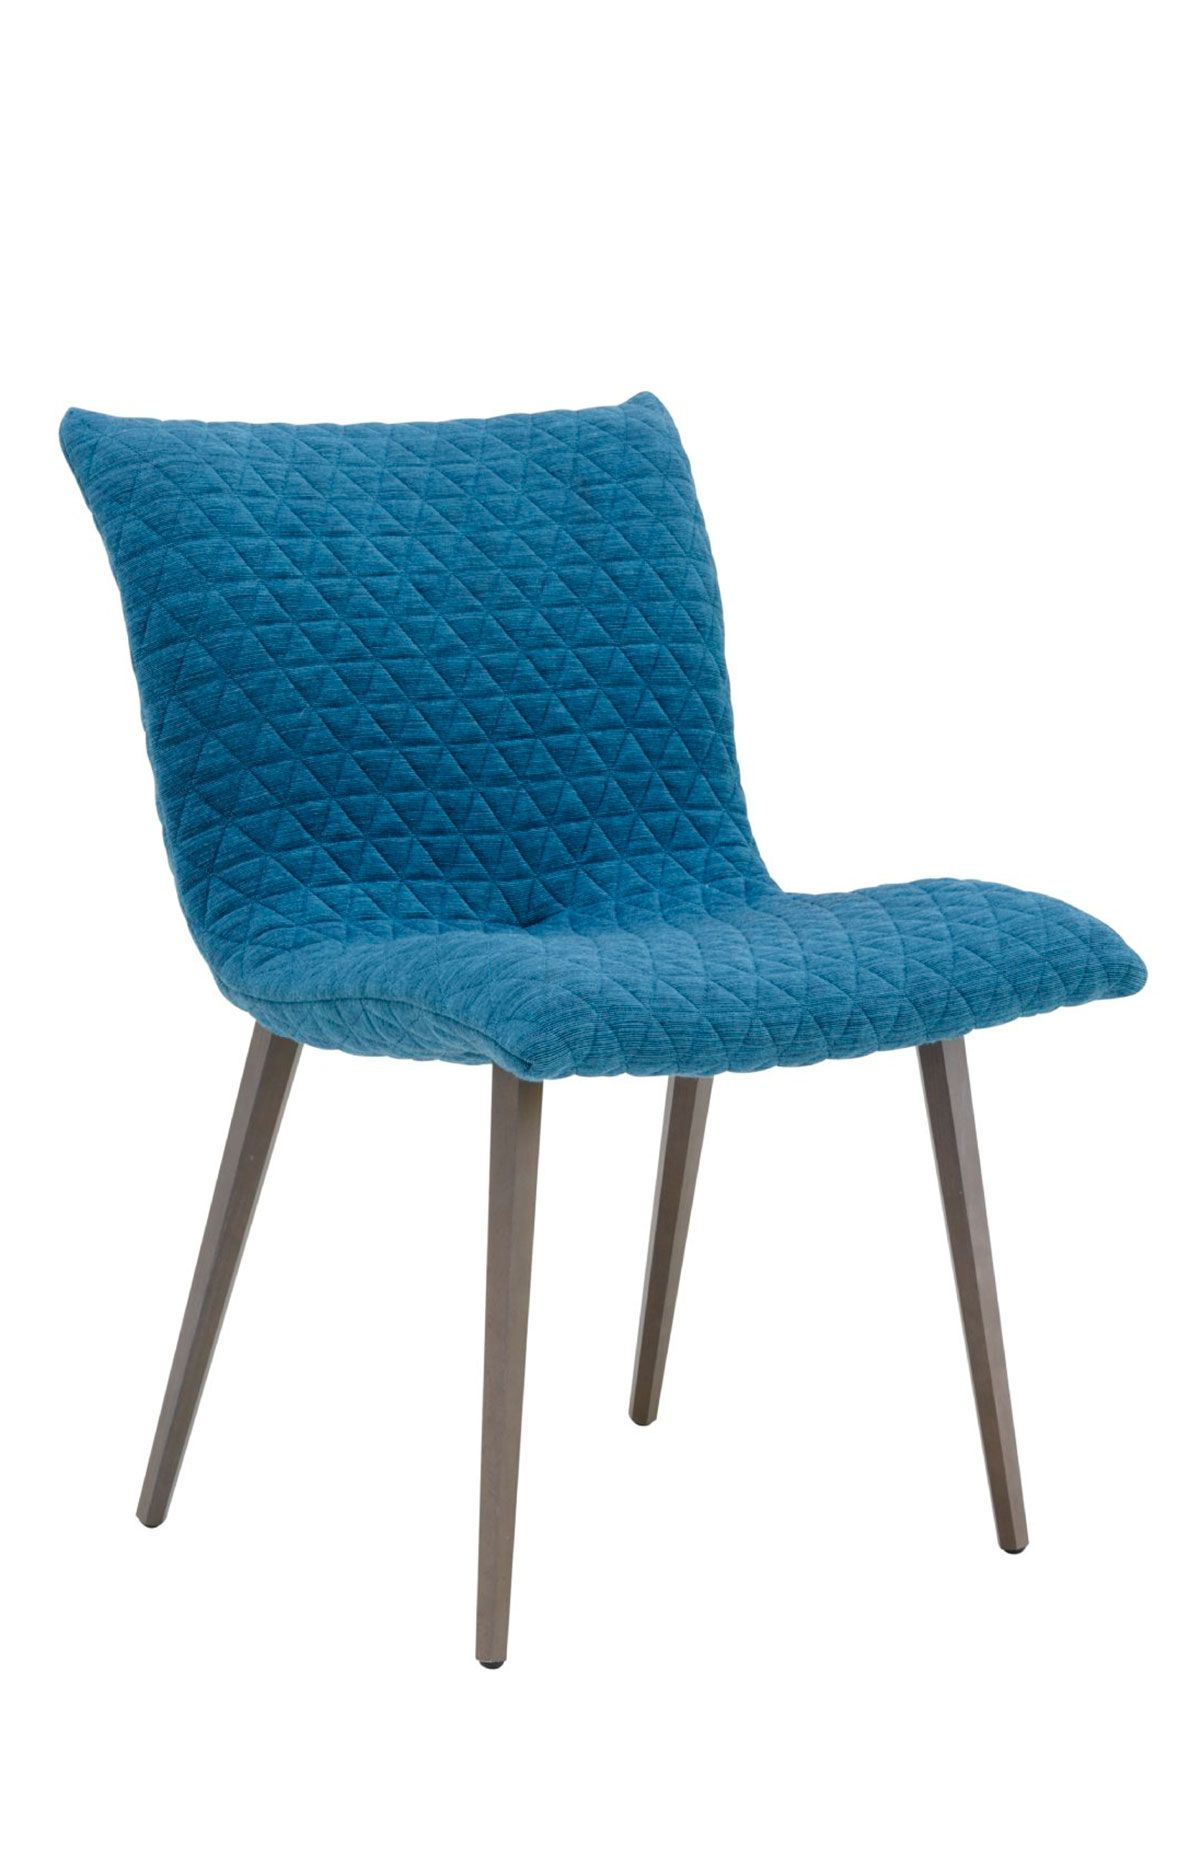 Calin Dining Chair Designed By Pascal Mourgue For Ligne Roset